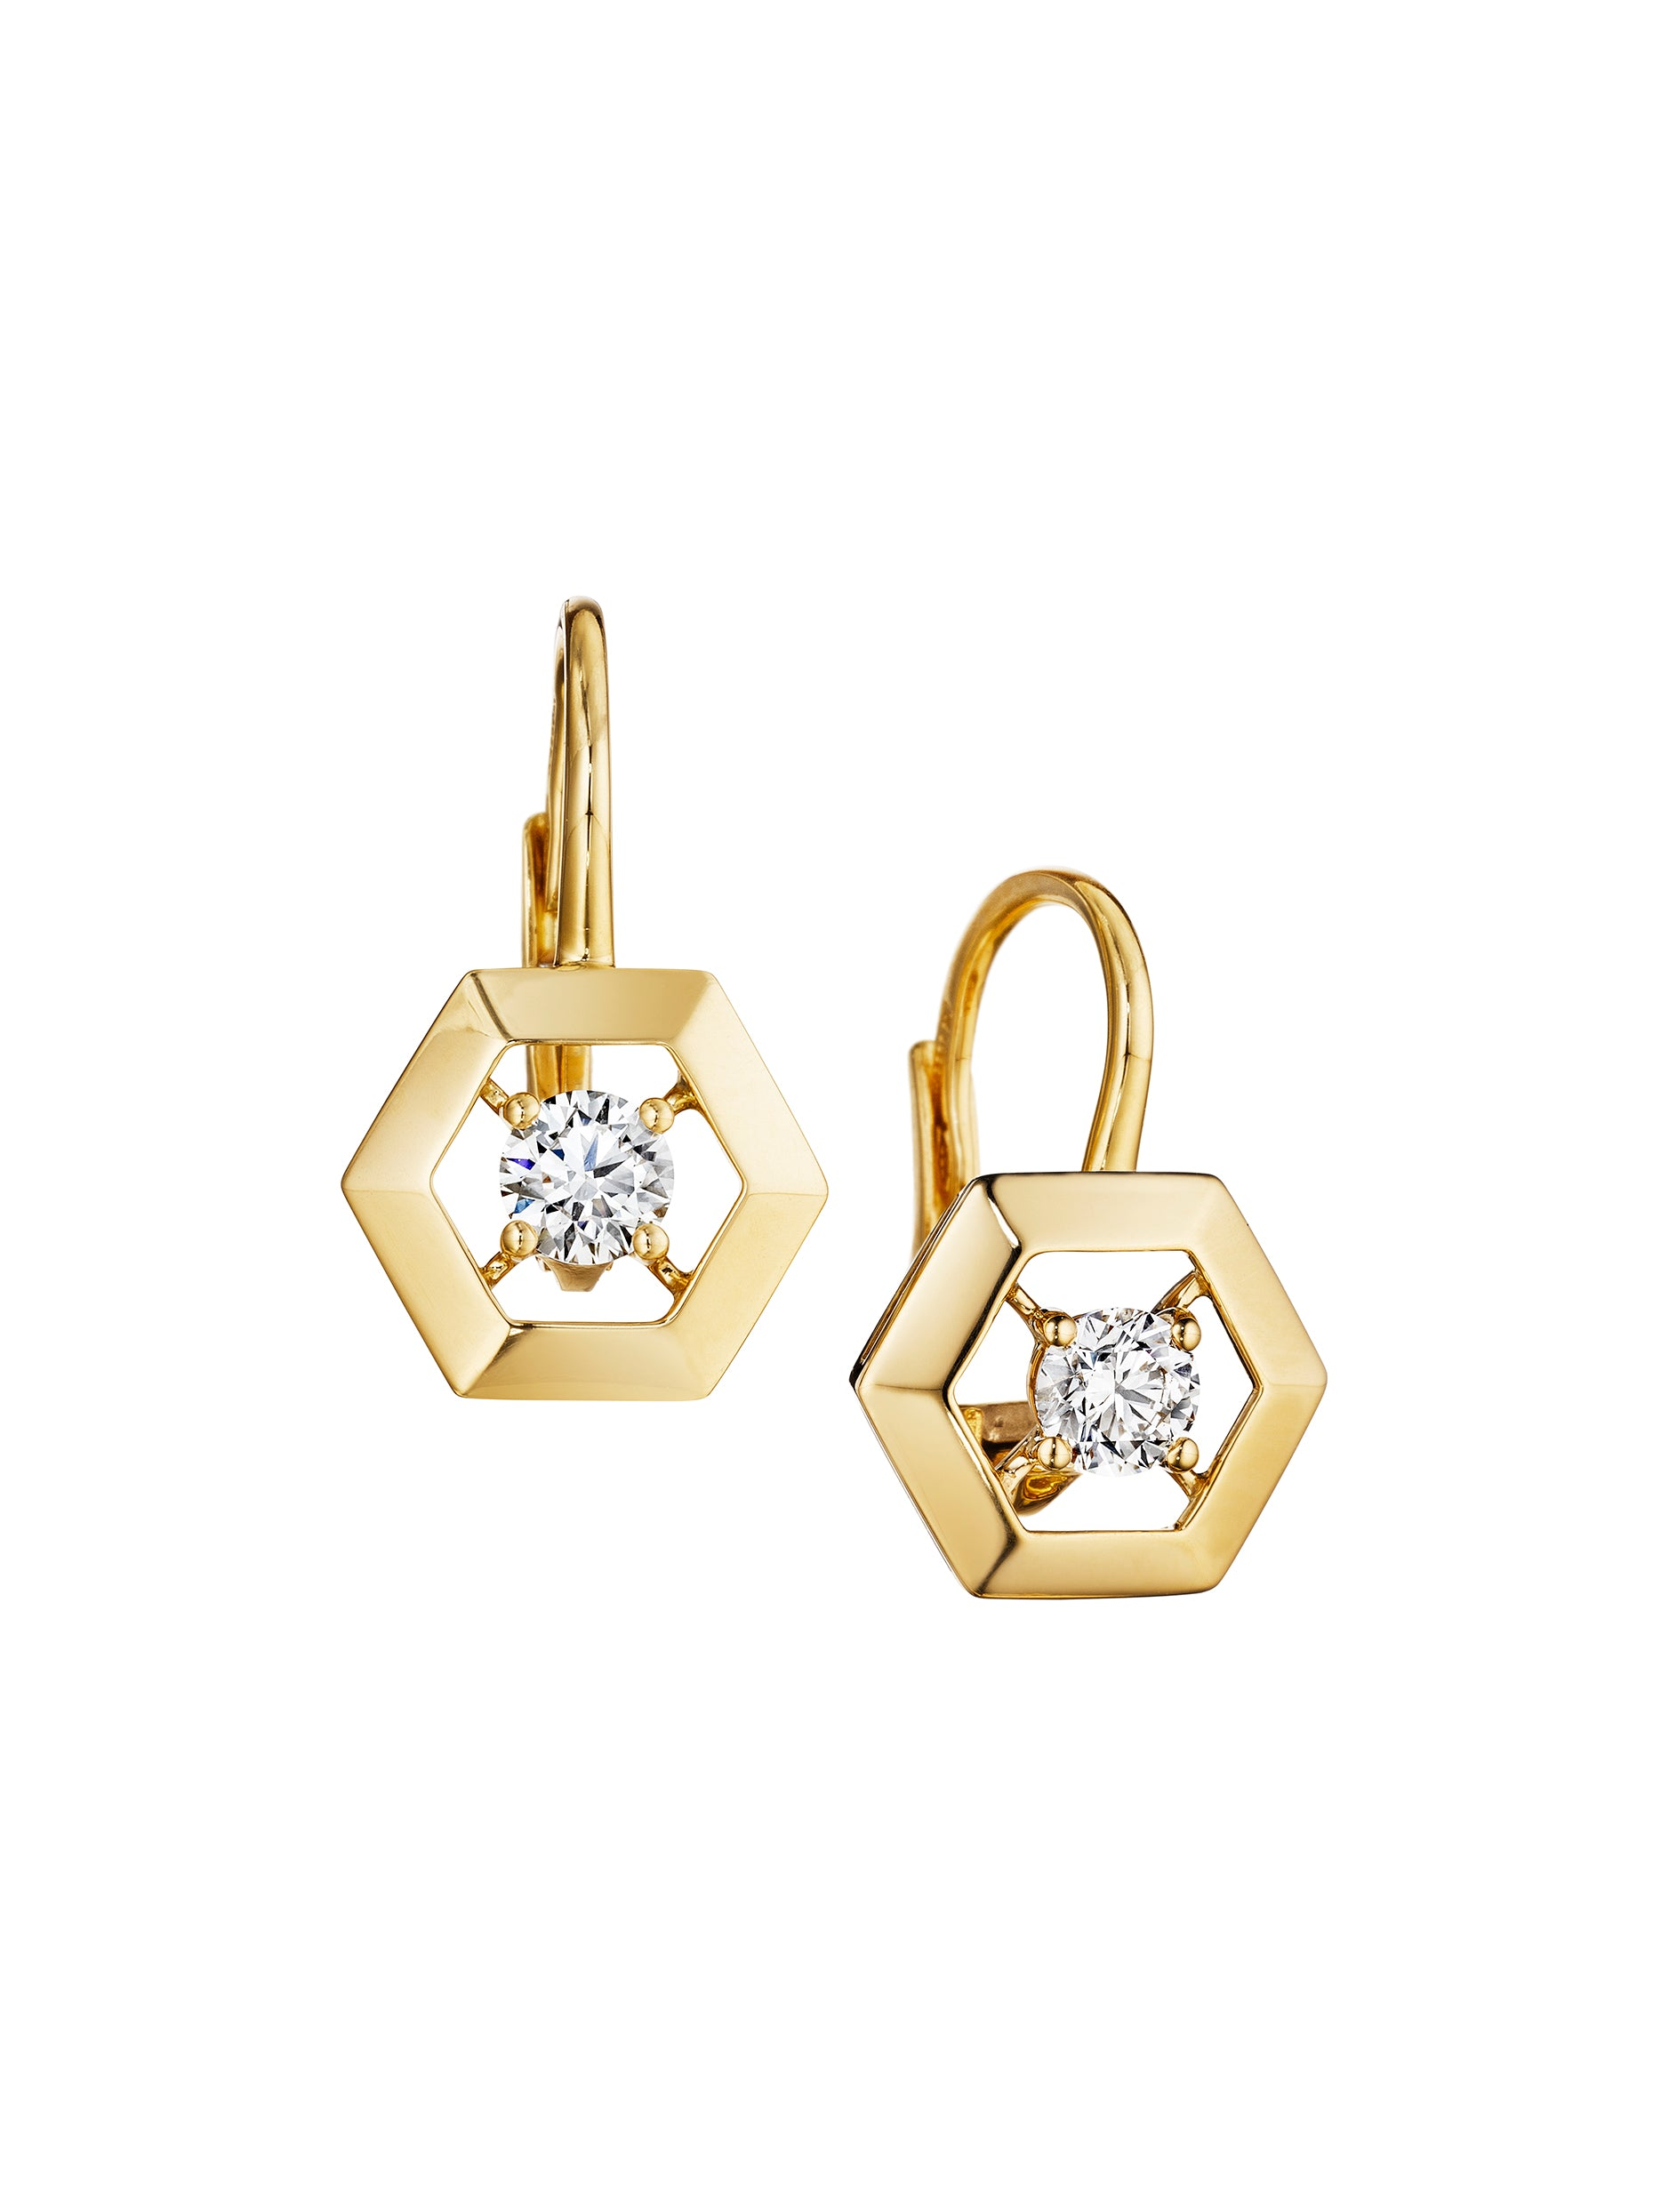 gold hanging neta earrings hexagongoldearrings hexagon wolpe